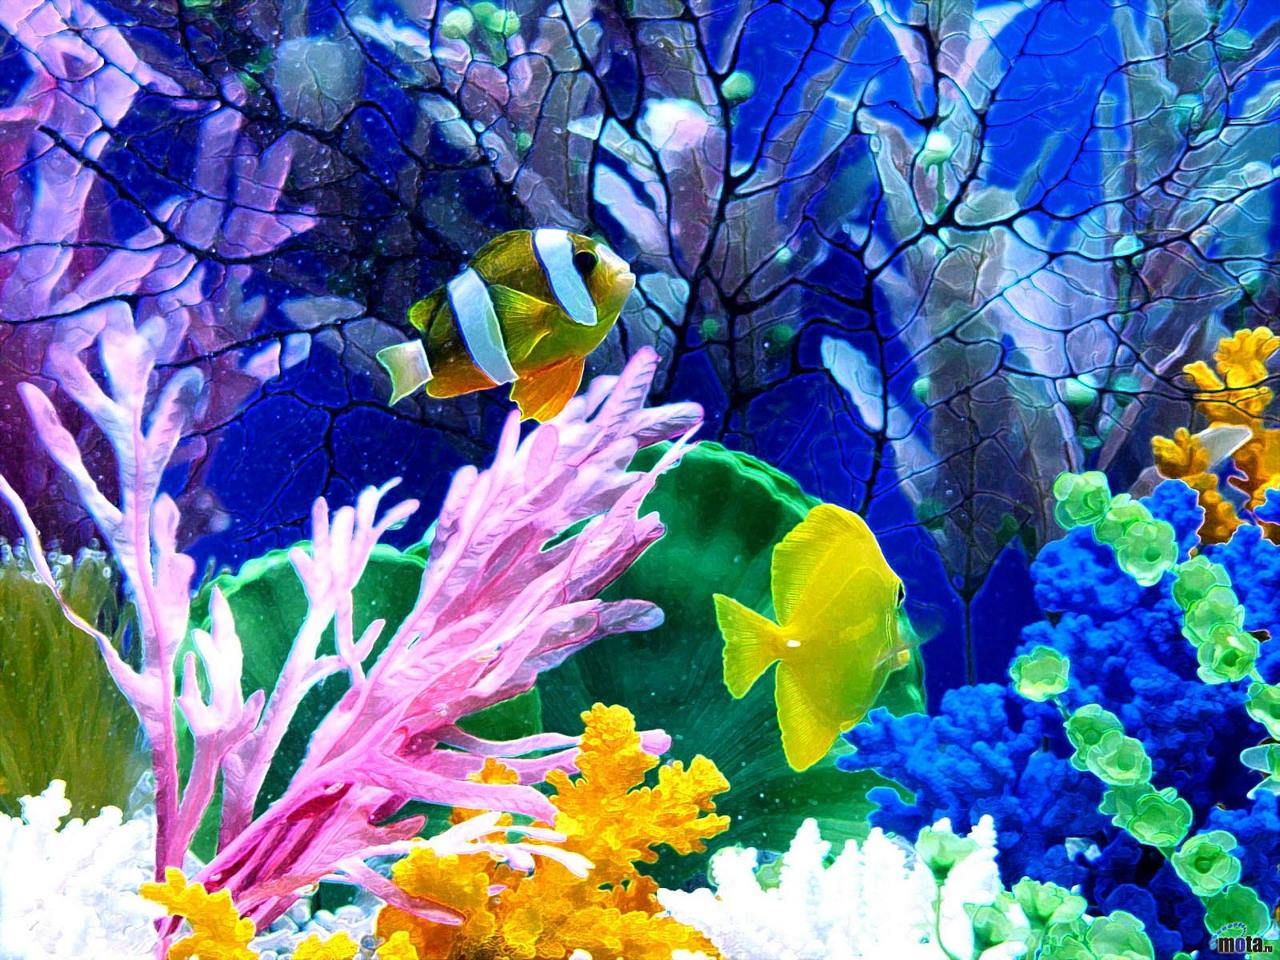 aquarium hd wallpaper - photo #2